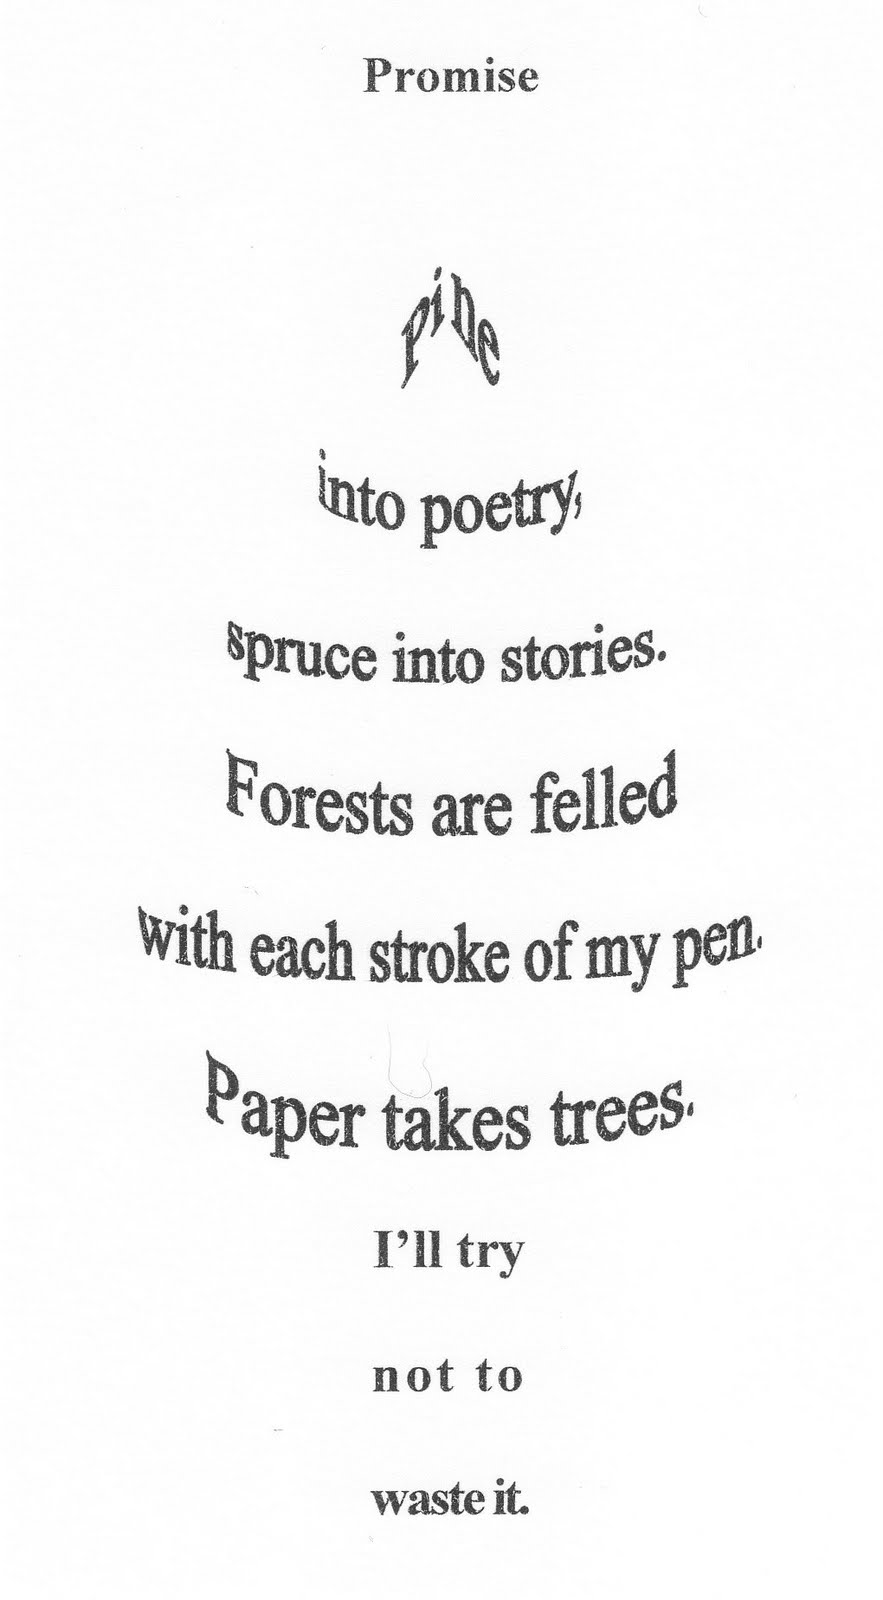 Promise Pine Into Poetry Spruce Into Stories. Forests Are Felled With Each Stroke Of My Pen. Paper Takes Trees. I'll Try Not To Waster It.